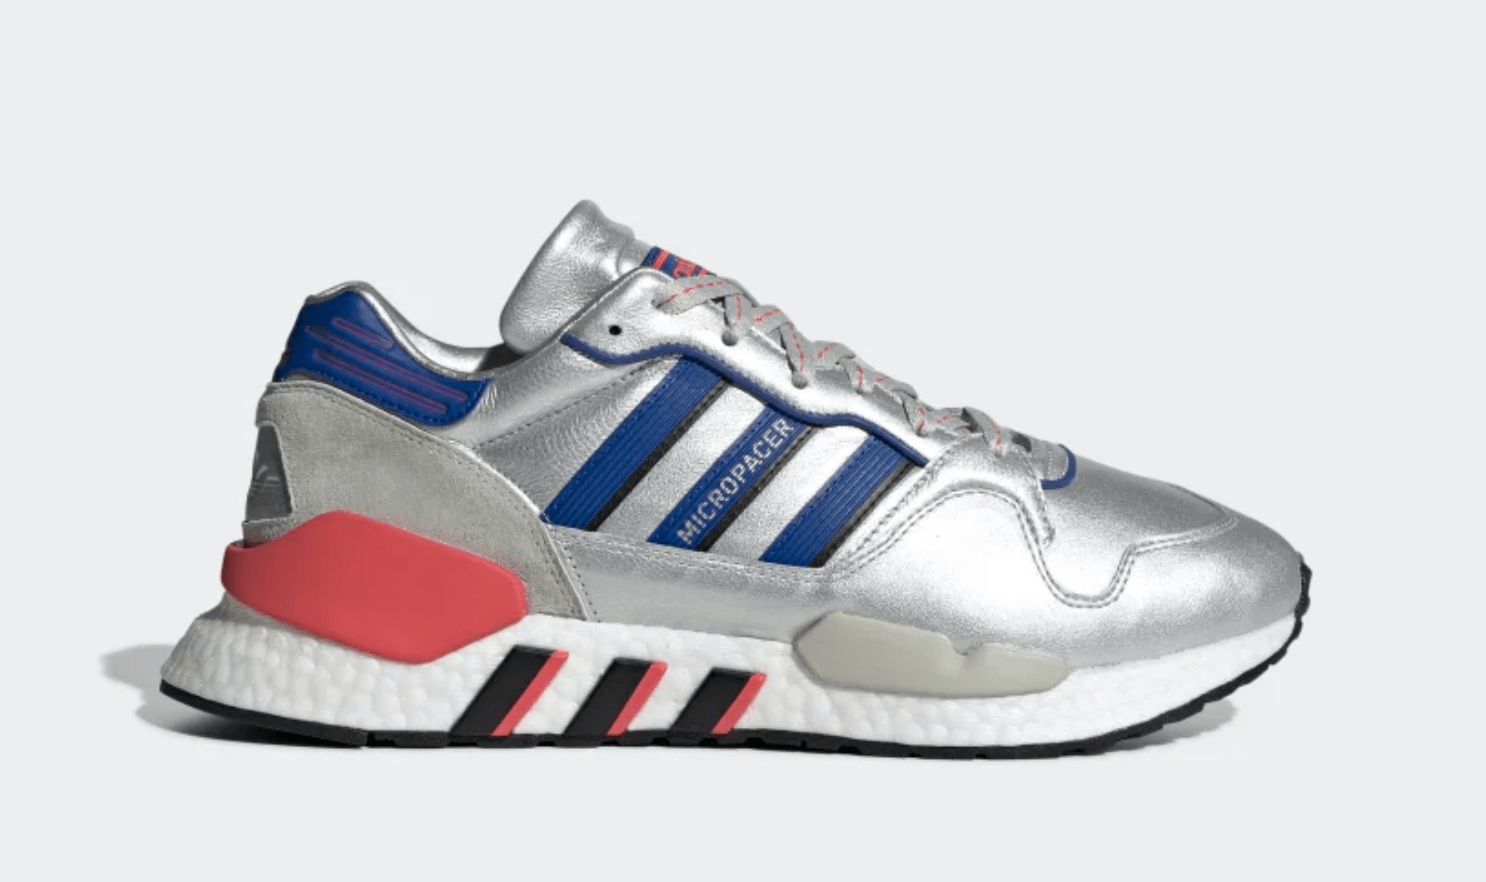 new arrivals c5ac1 405ab The adidas Never Made collection is back. After an initial release late  last year, the series of hybrid classics is back in one of adidas most  recognizable ...